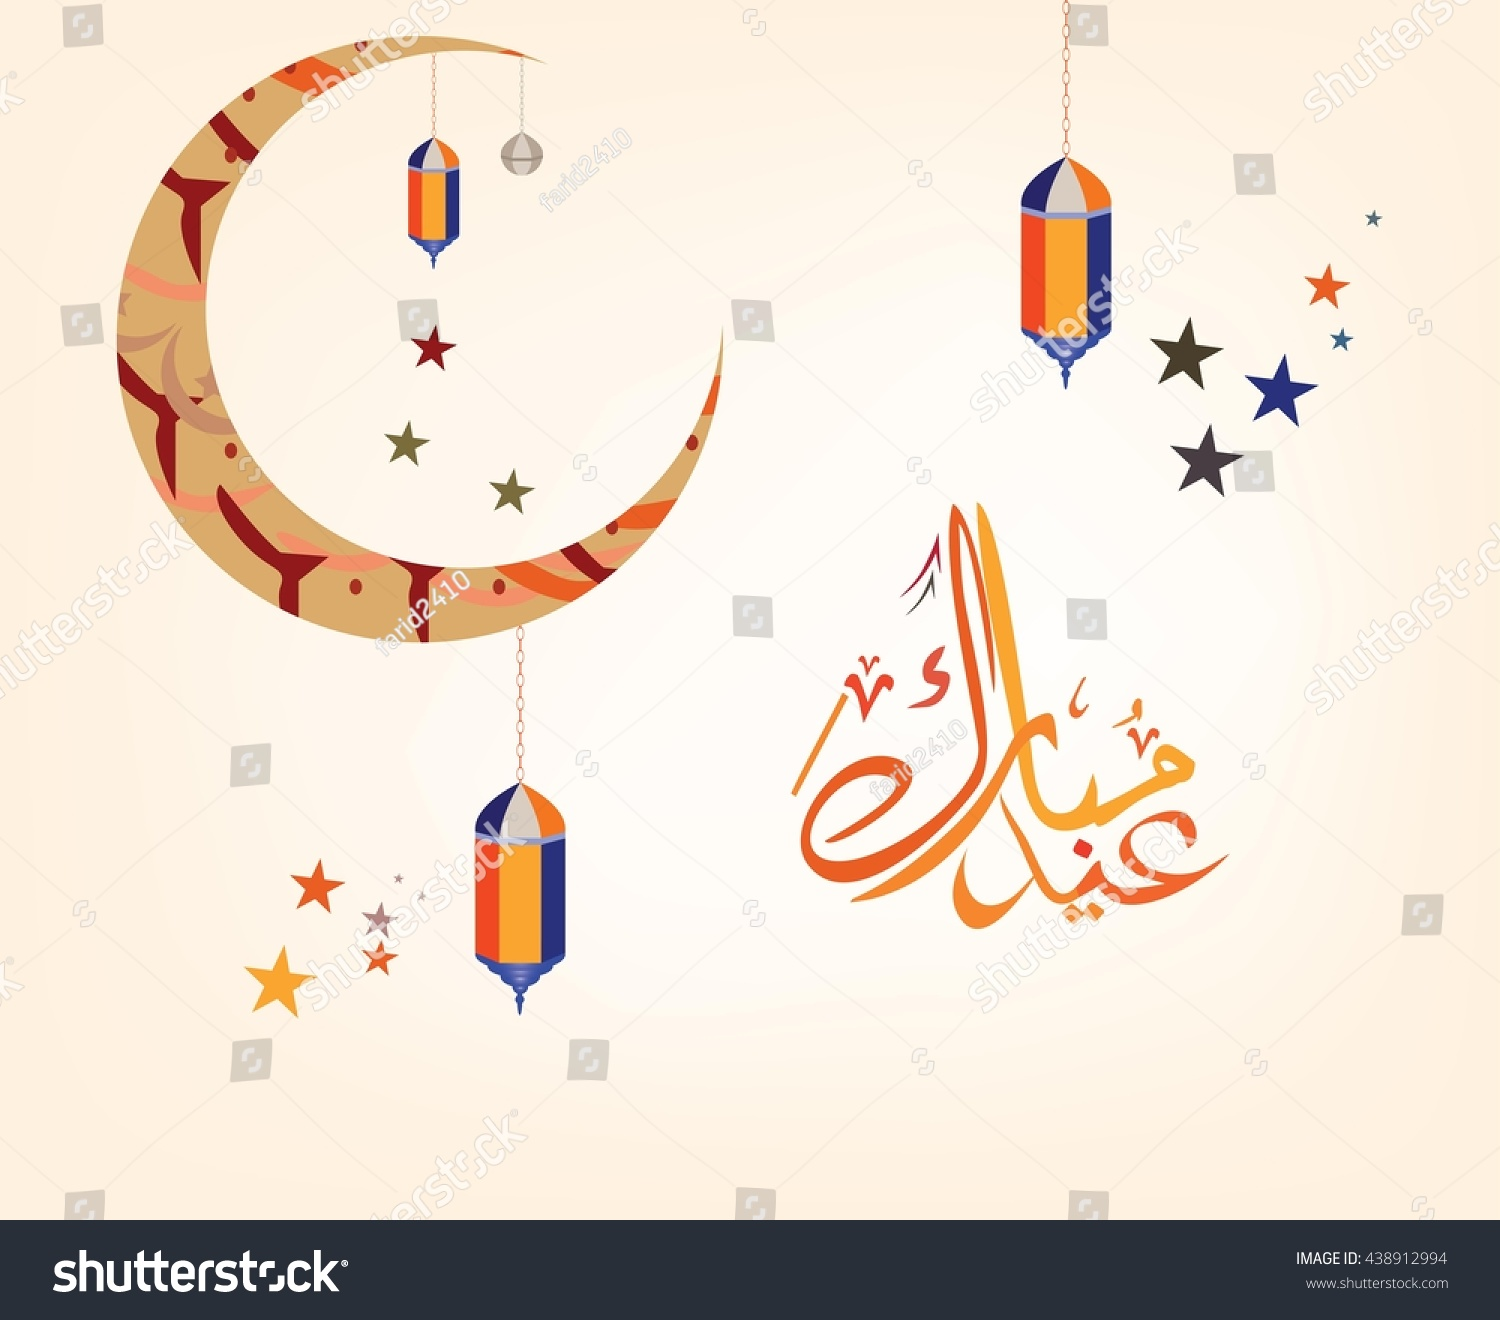 Eid mubarak blessed festival arabic calligraphy stock vector eid mubarak blessed festival in arabic calligraphy style which is a traditional muslim greeting m4hsunfo